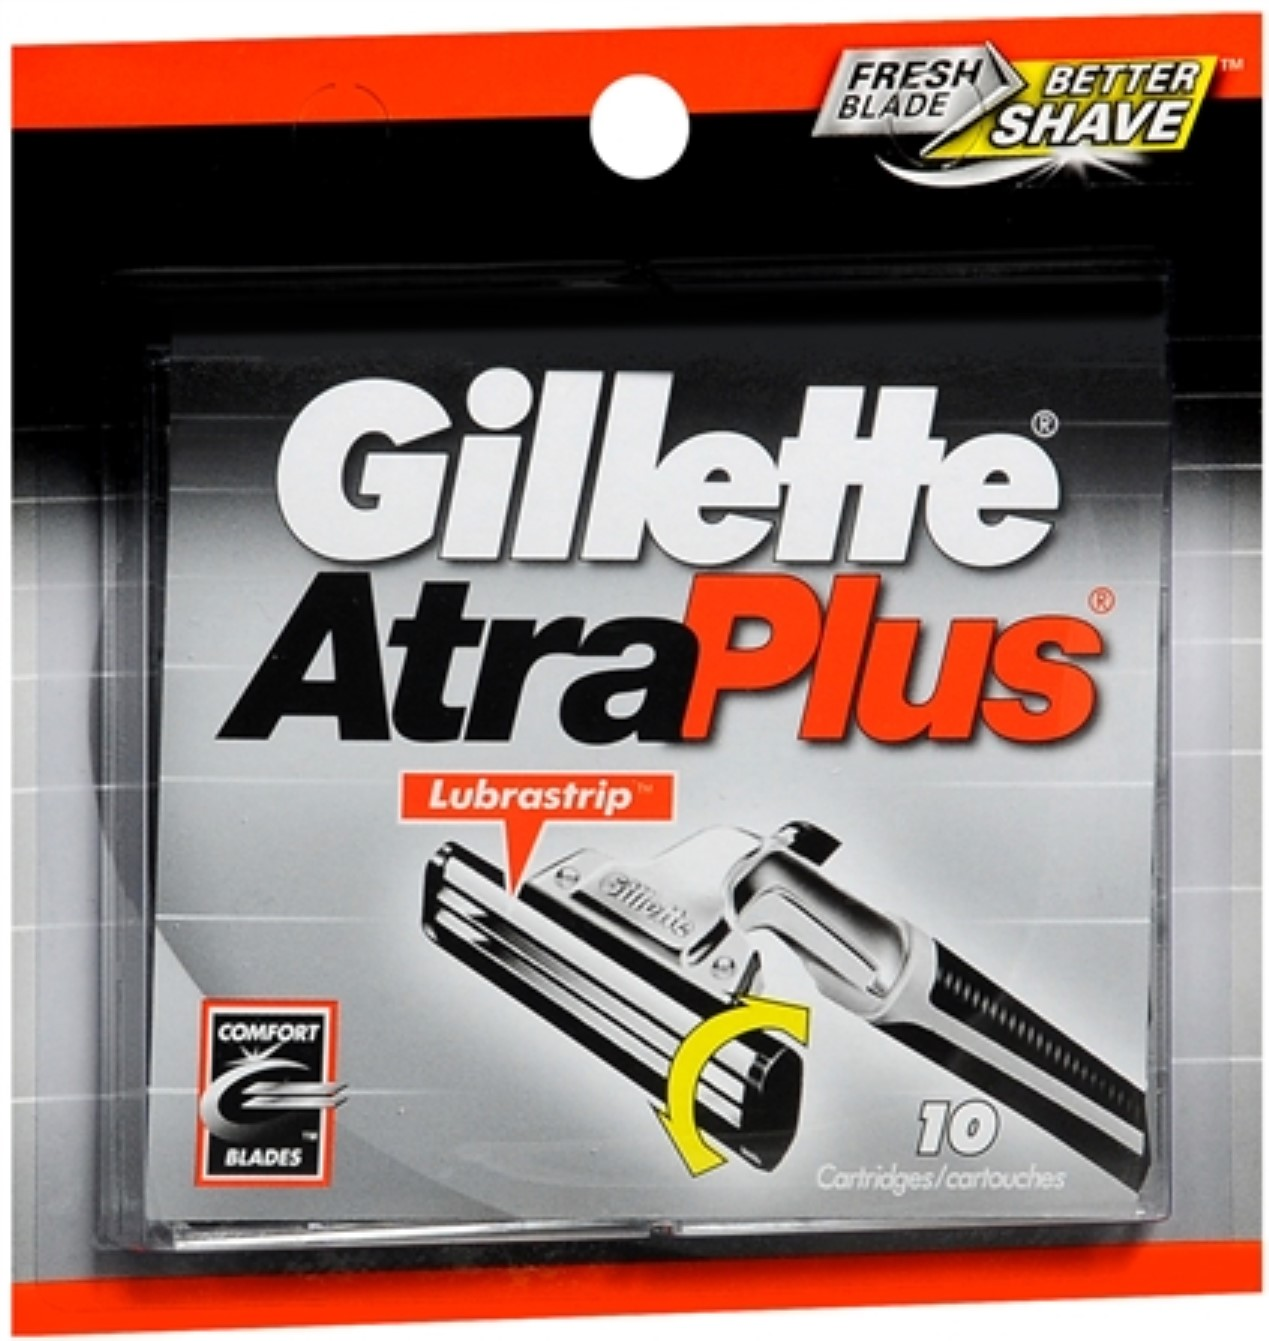 Gillette AtraPlus Cartridges 10 Each